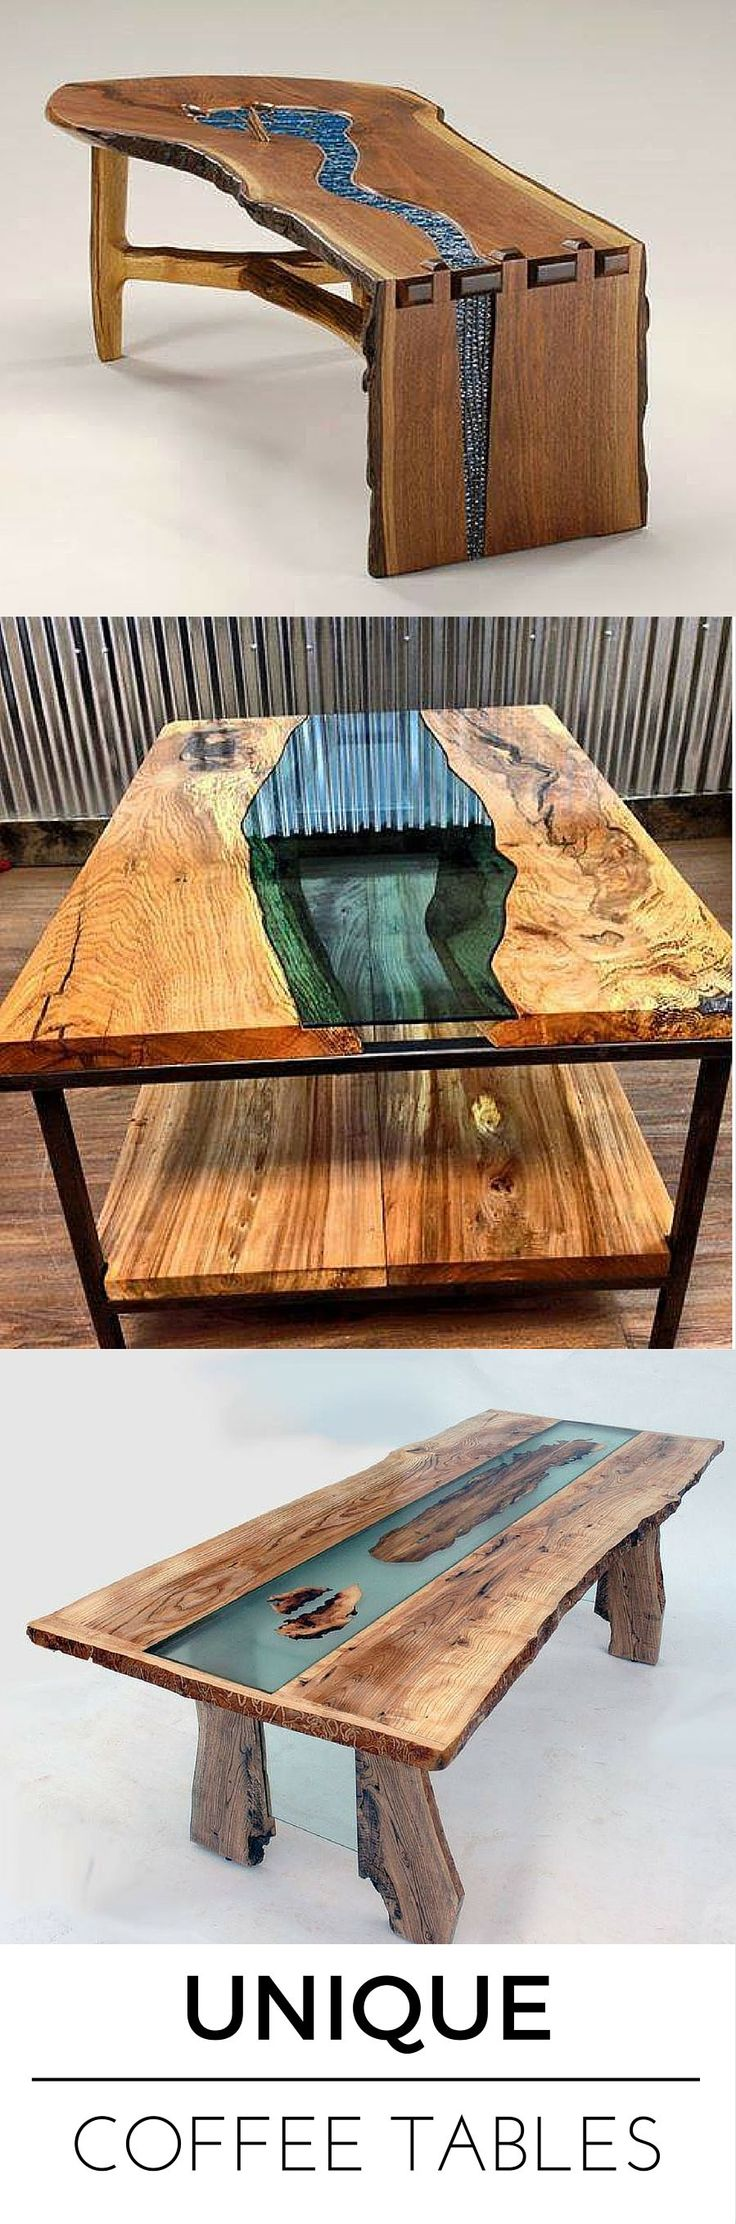 Diy Coffee Tables 37 - The Coolest DIY Coffee Tables Ideas